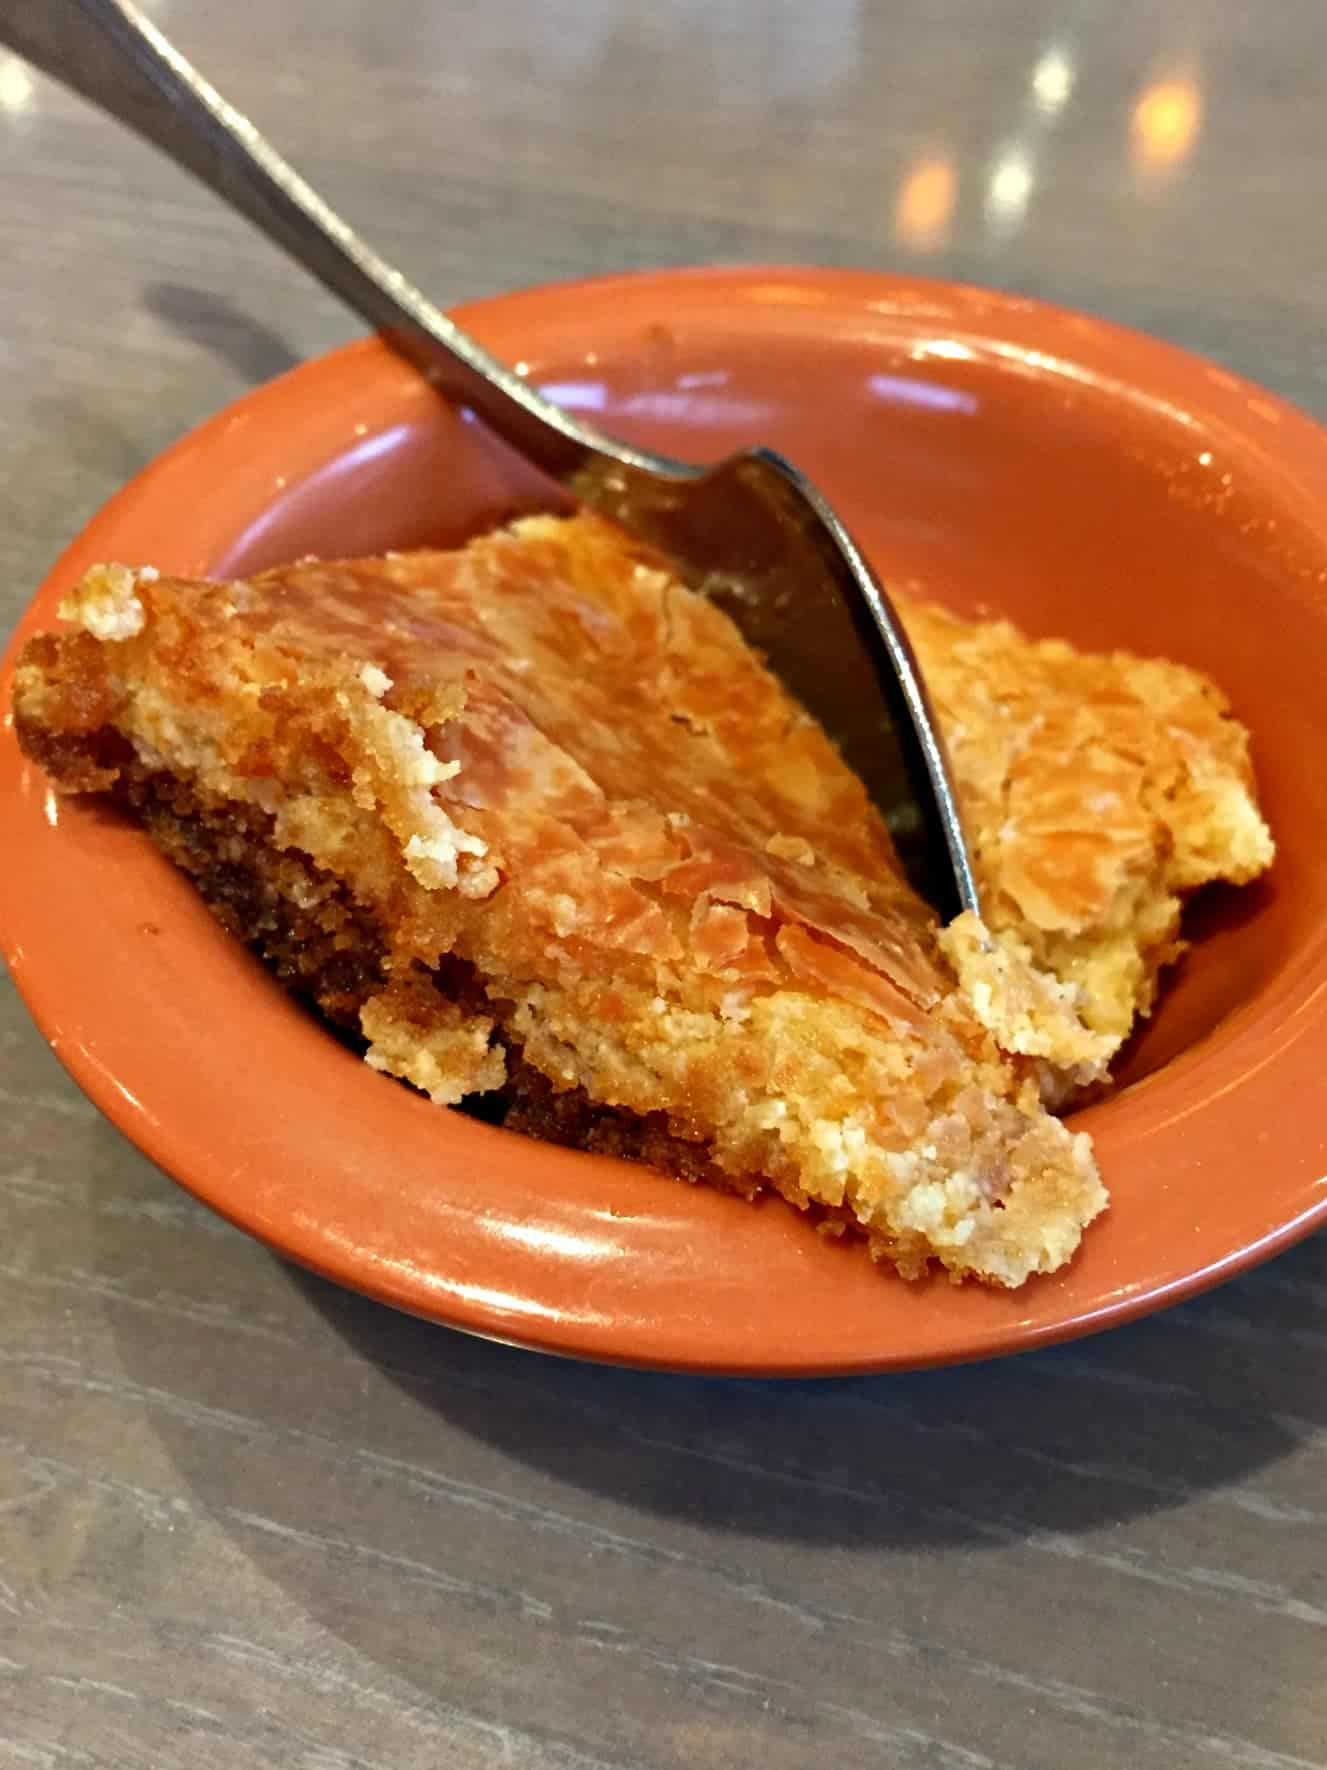 Paula Deen's Ooey Gooey Butter Cake at her restaurant in Pigeon Forge